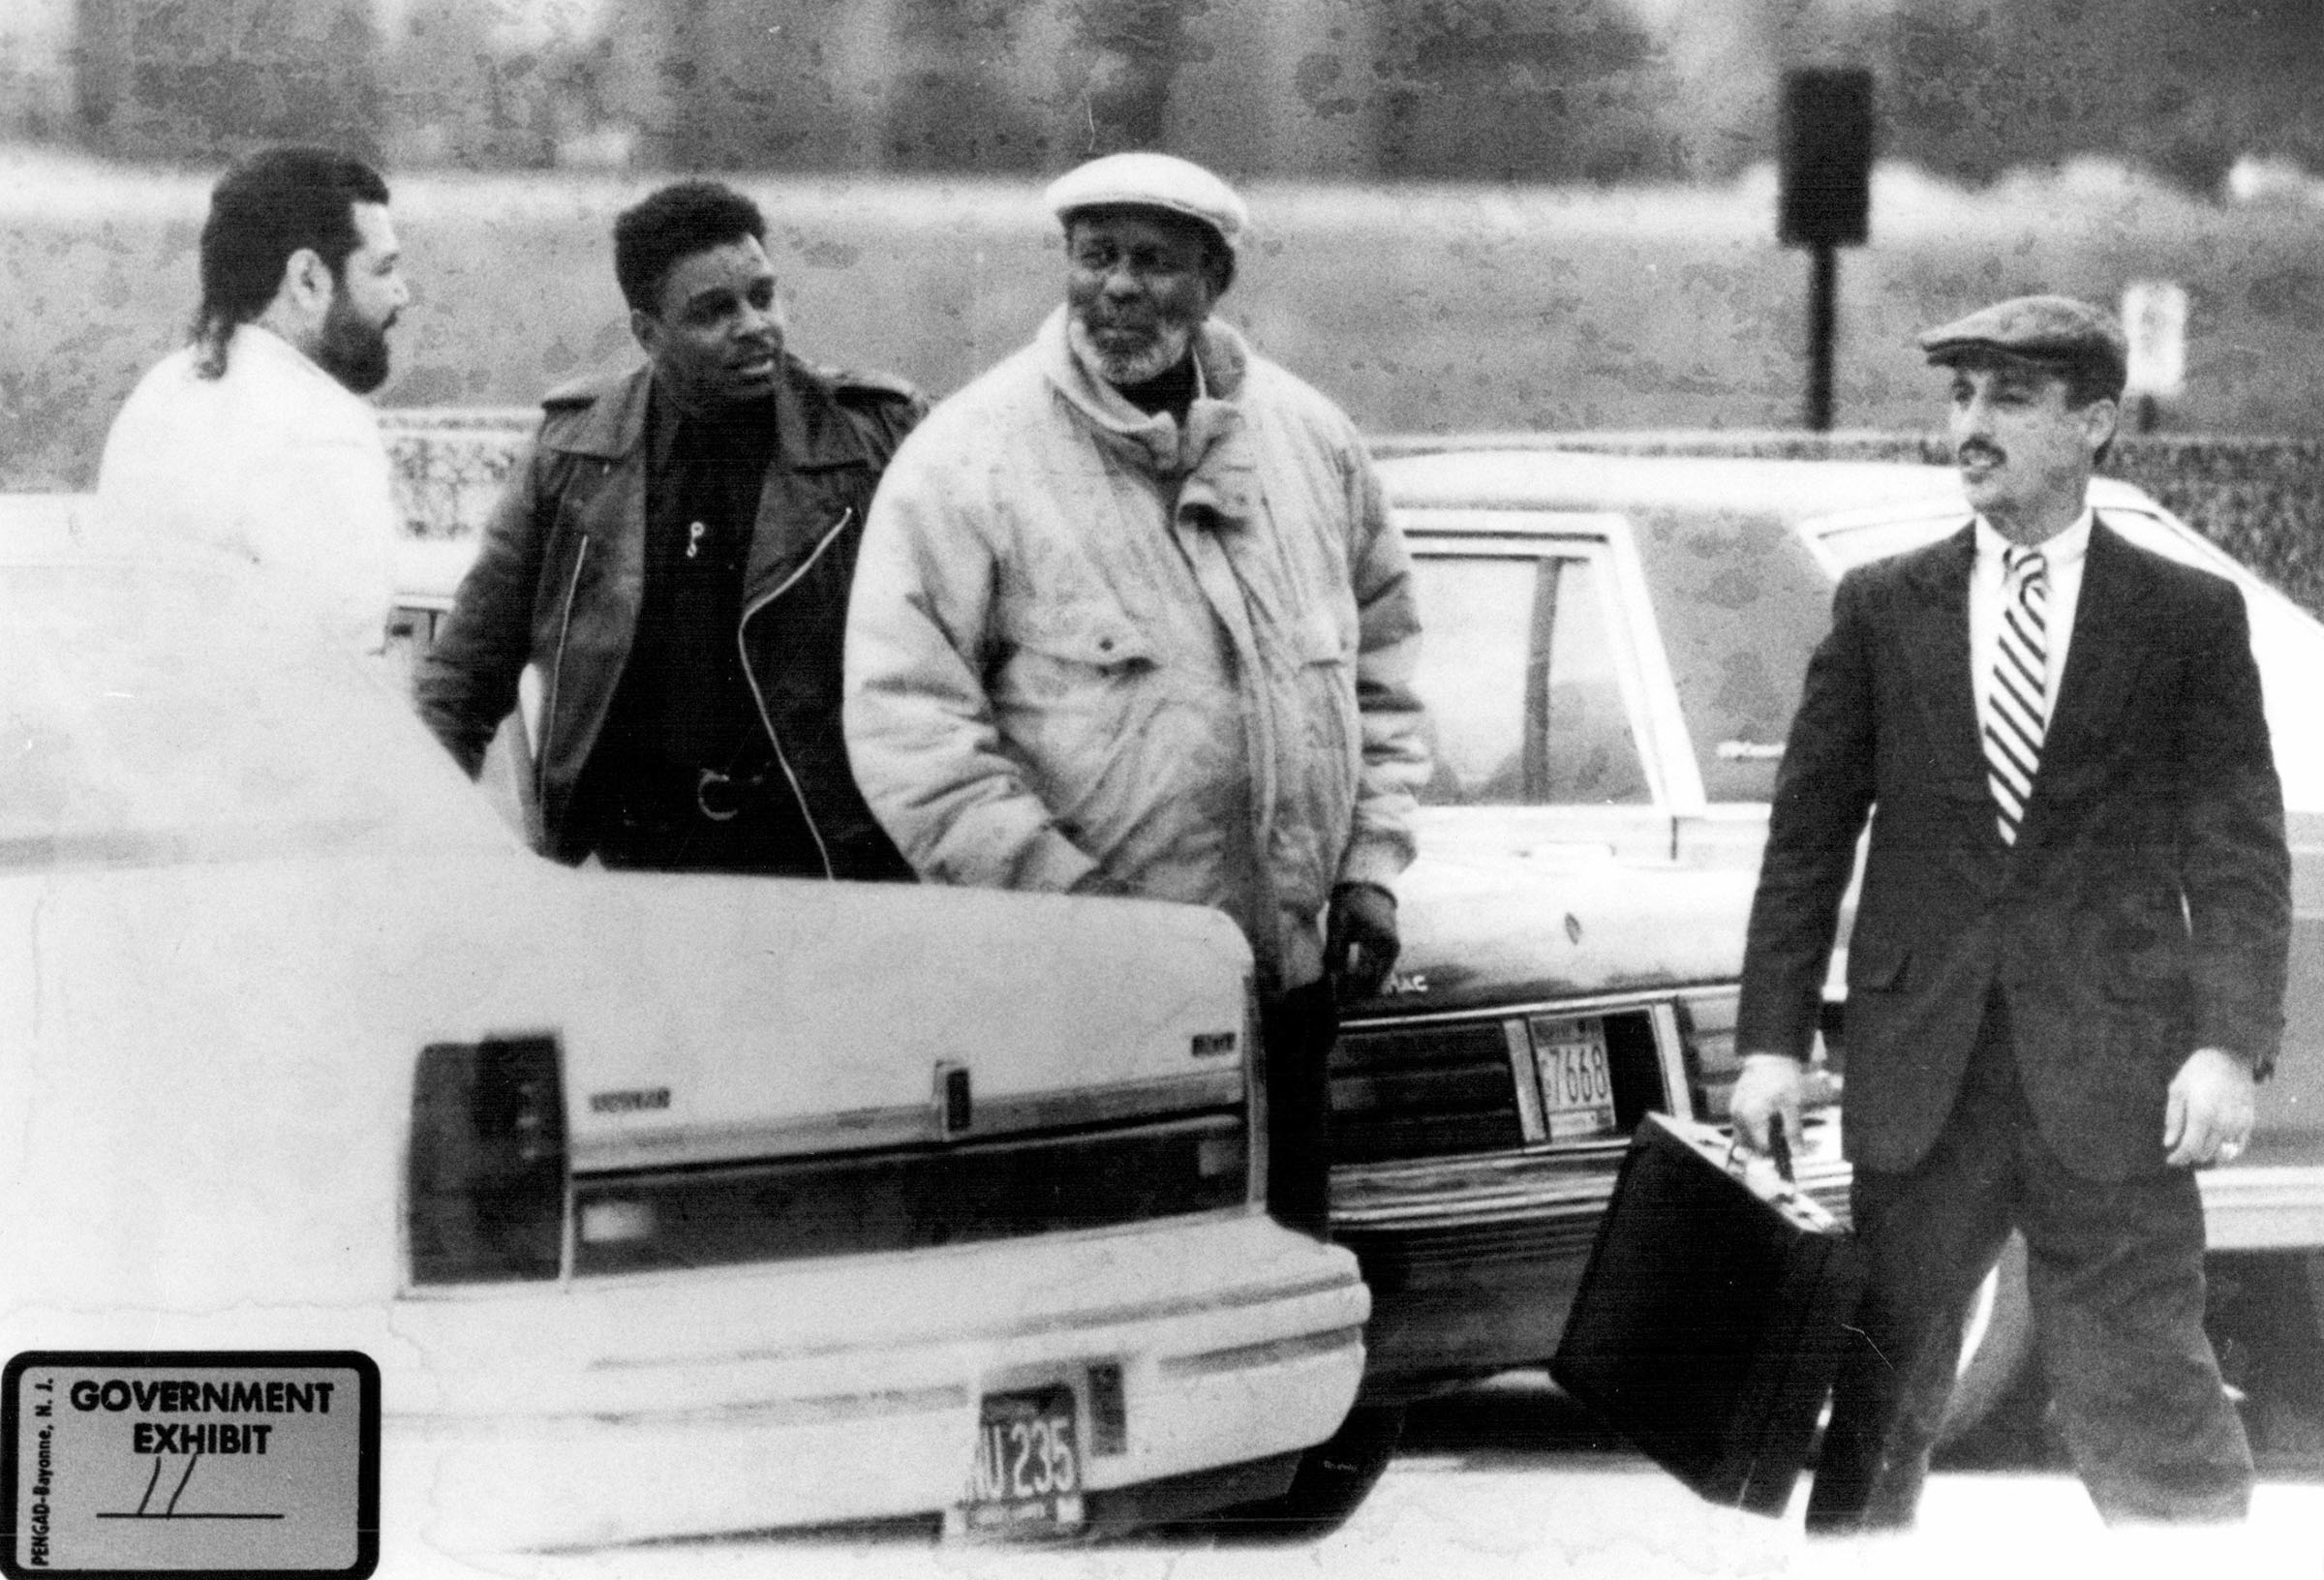 Posing as a drug dealer, FBI agent Mike Castro, far right, arrives at a Detroit-area bank. Royal Oak Township police officer Clarence Cooper, second from left, was allegedly recruited by Mayor Coleman Young's brother-in-law Willie Volsan, center.  Courtesy of the Detroit Free Press.